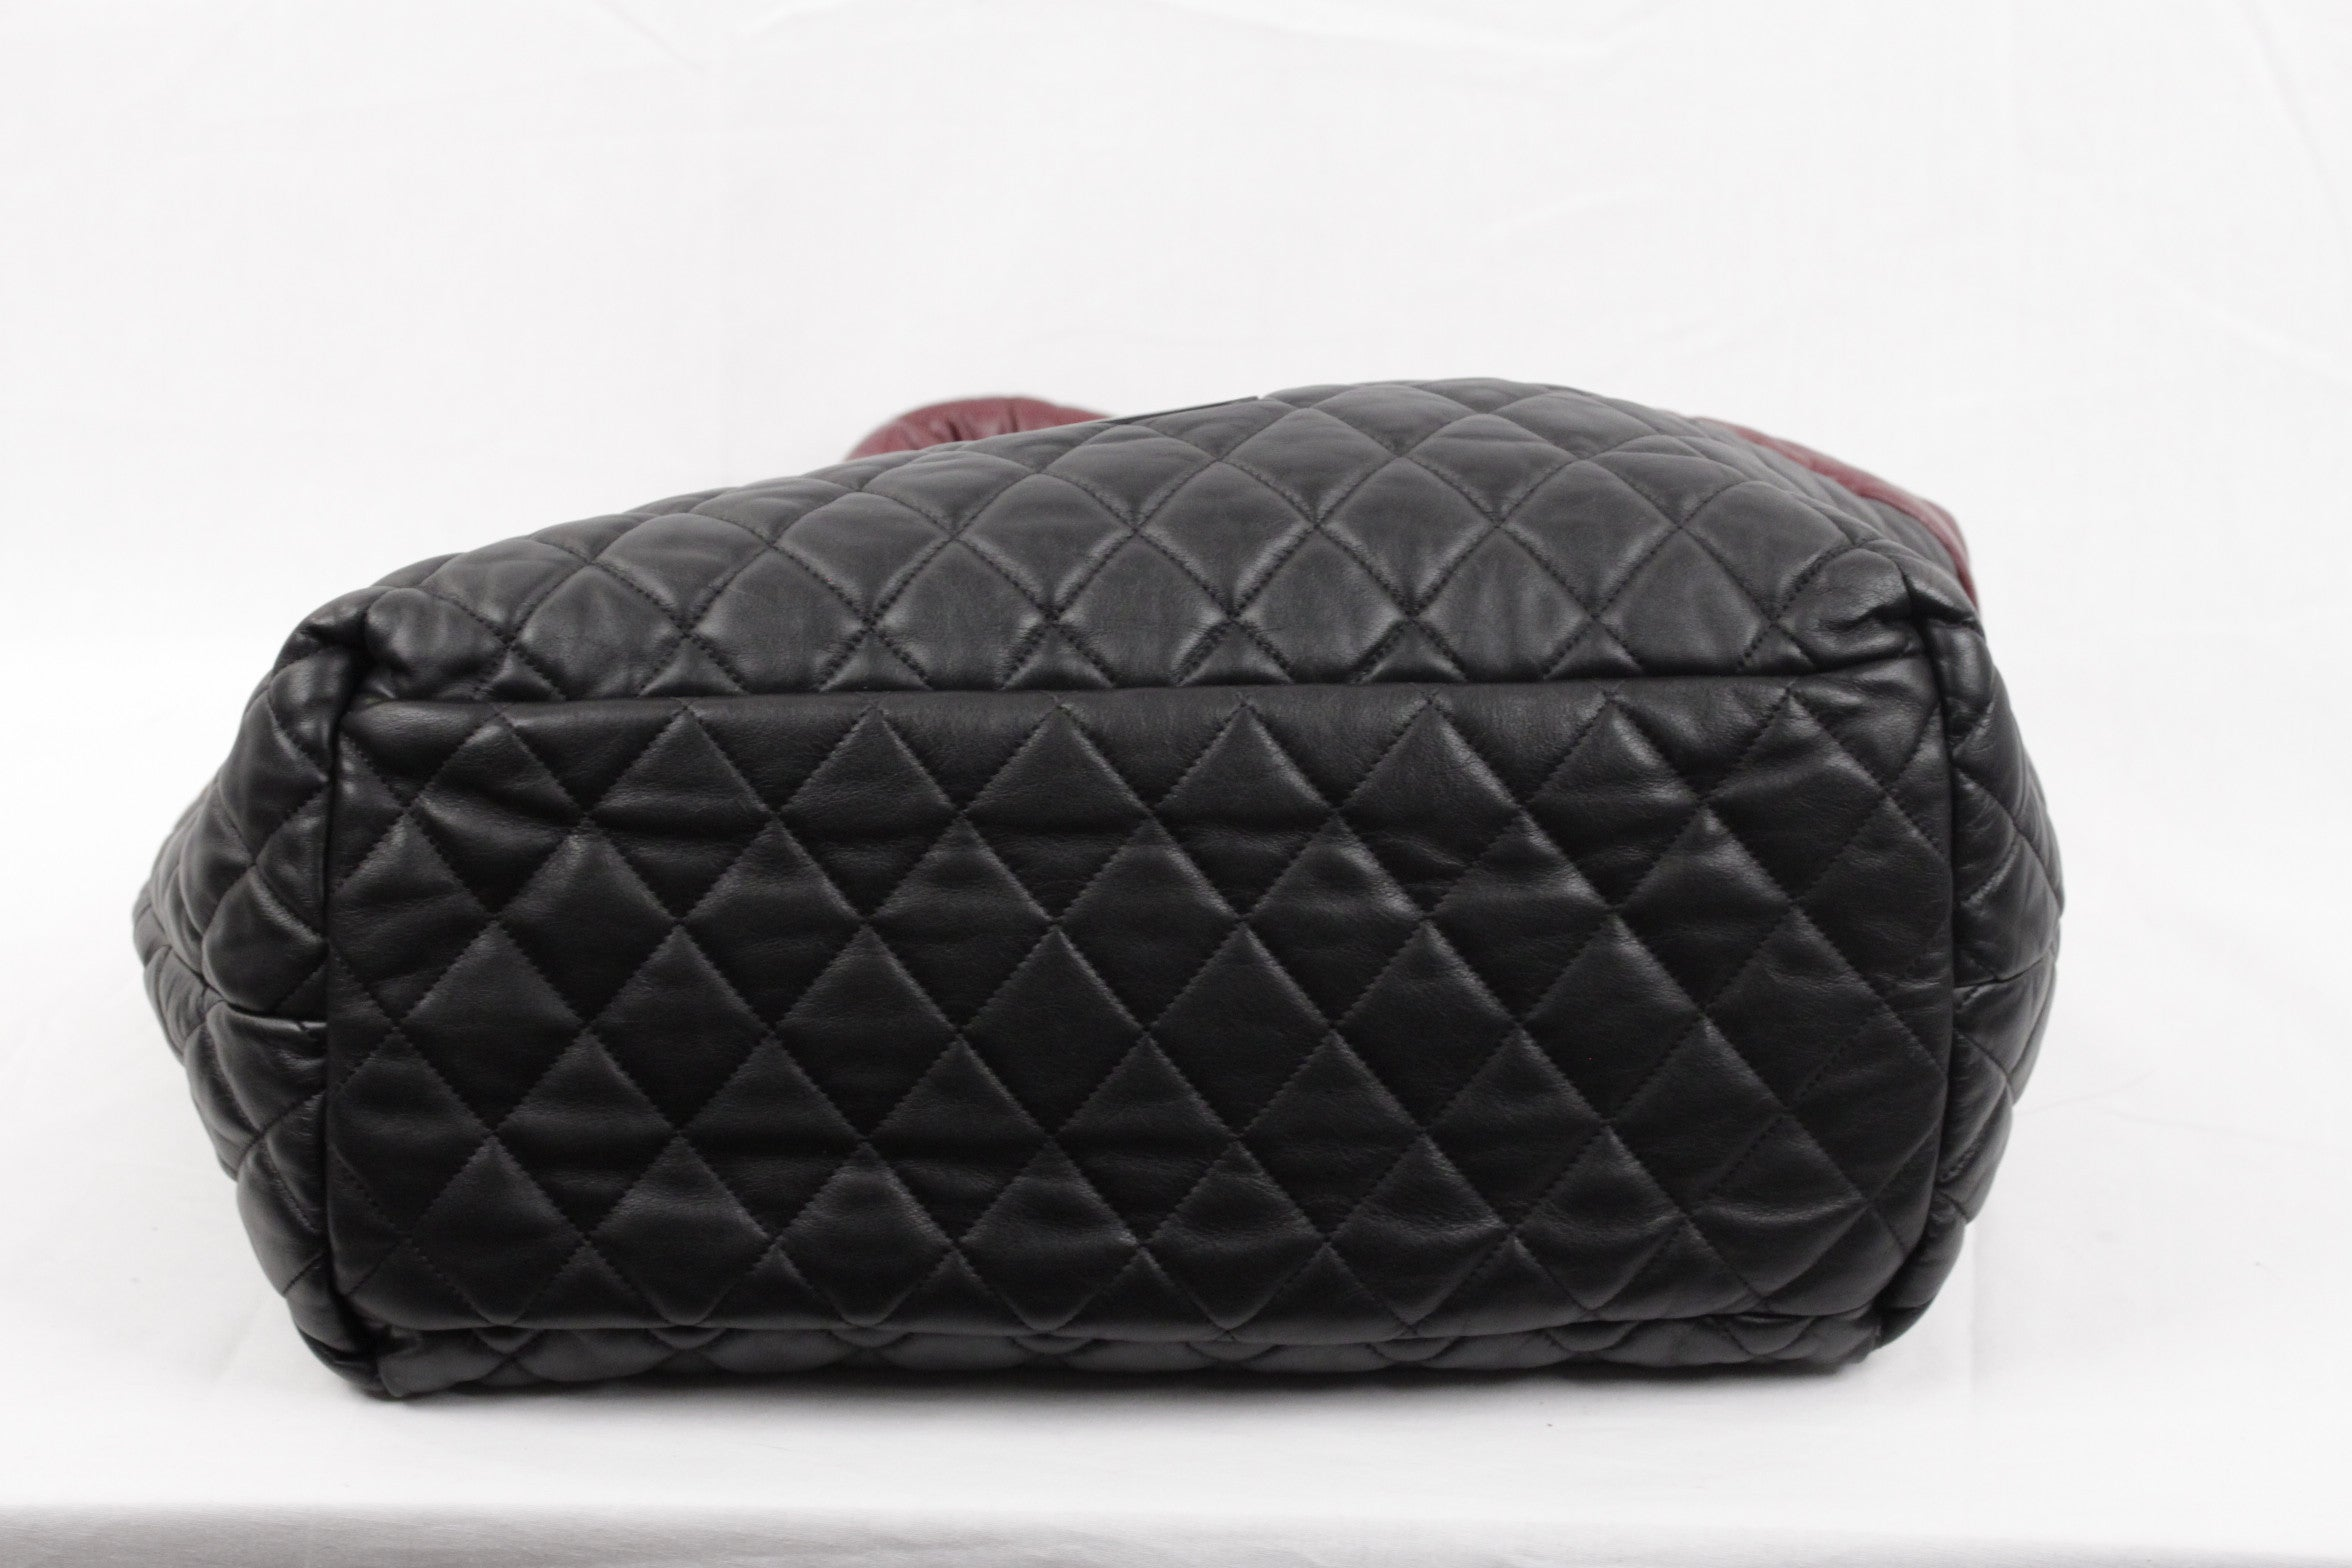 ca94f27aa Chanel Black/Burgundy Reversible Leather Coco Cocoon Tote Handbag For Sale  at 1stdibs